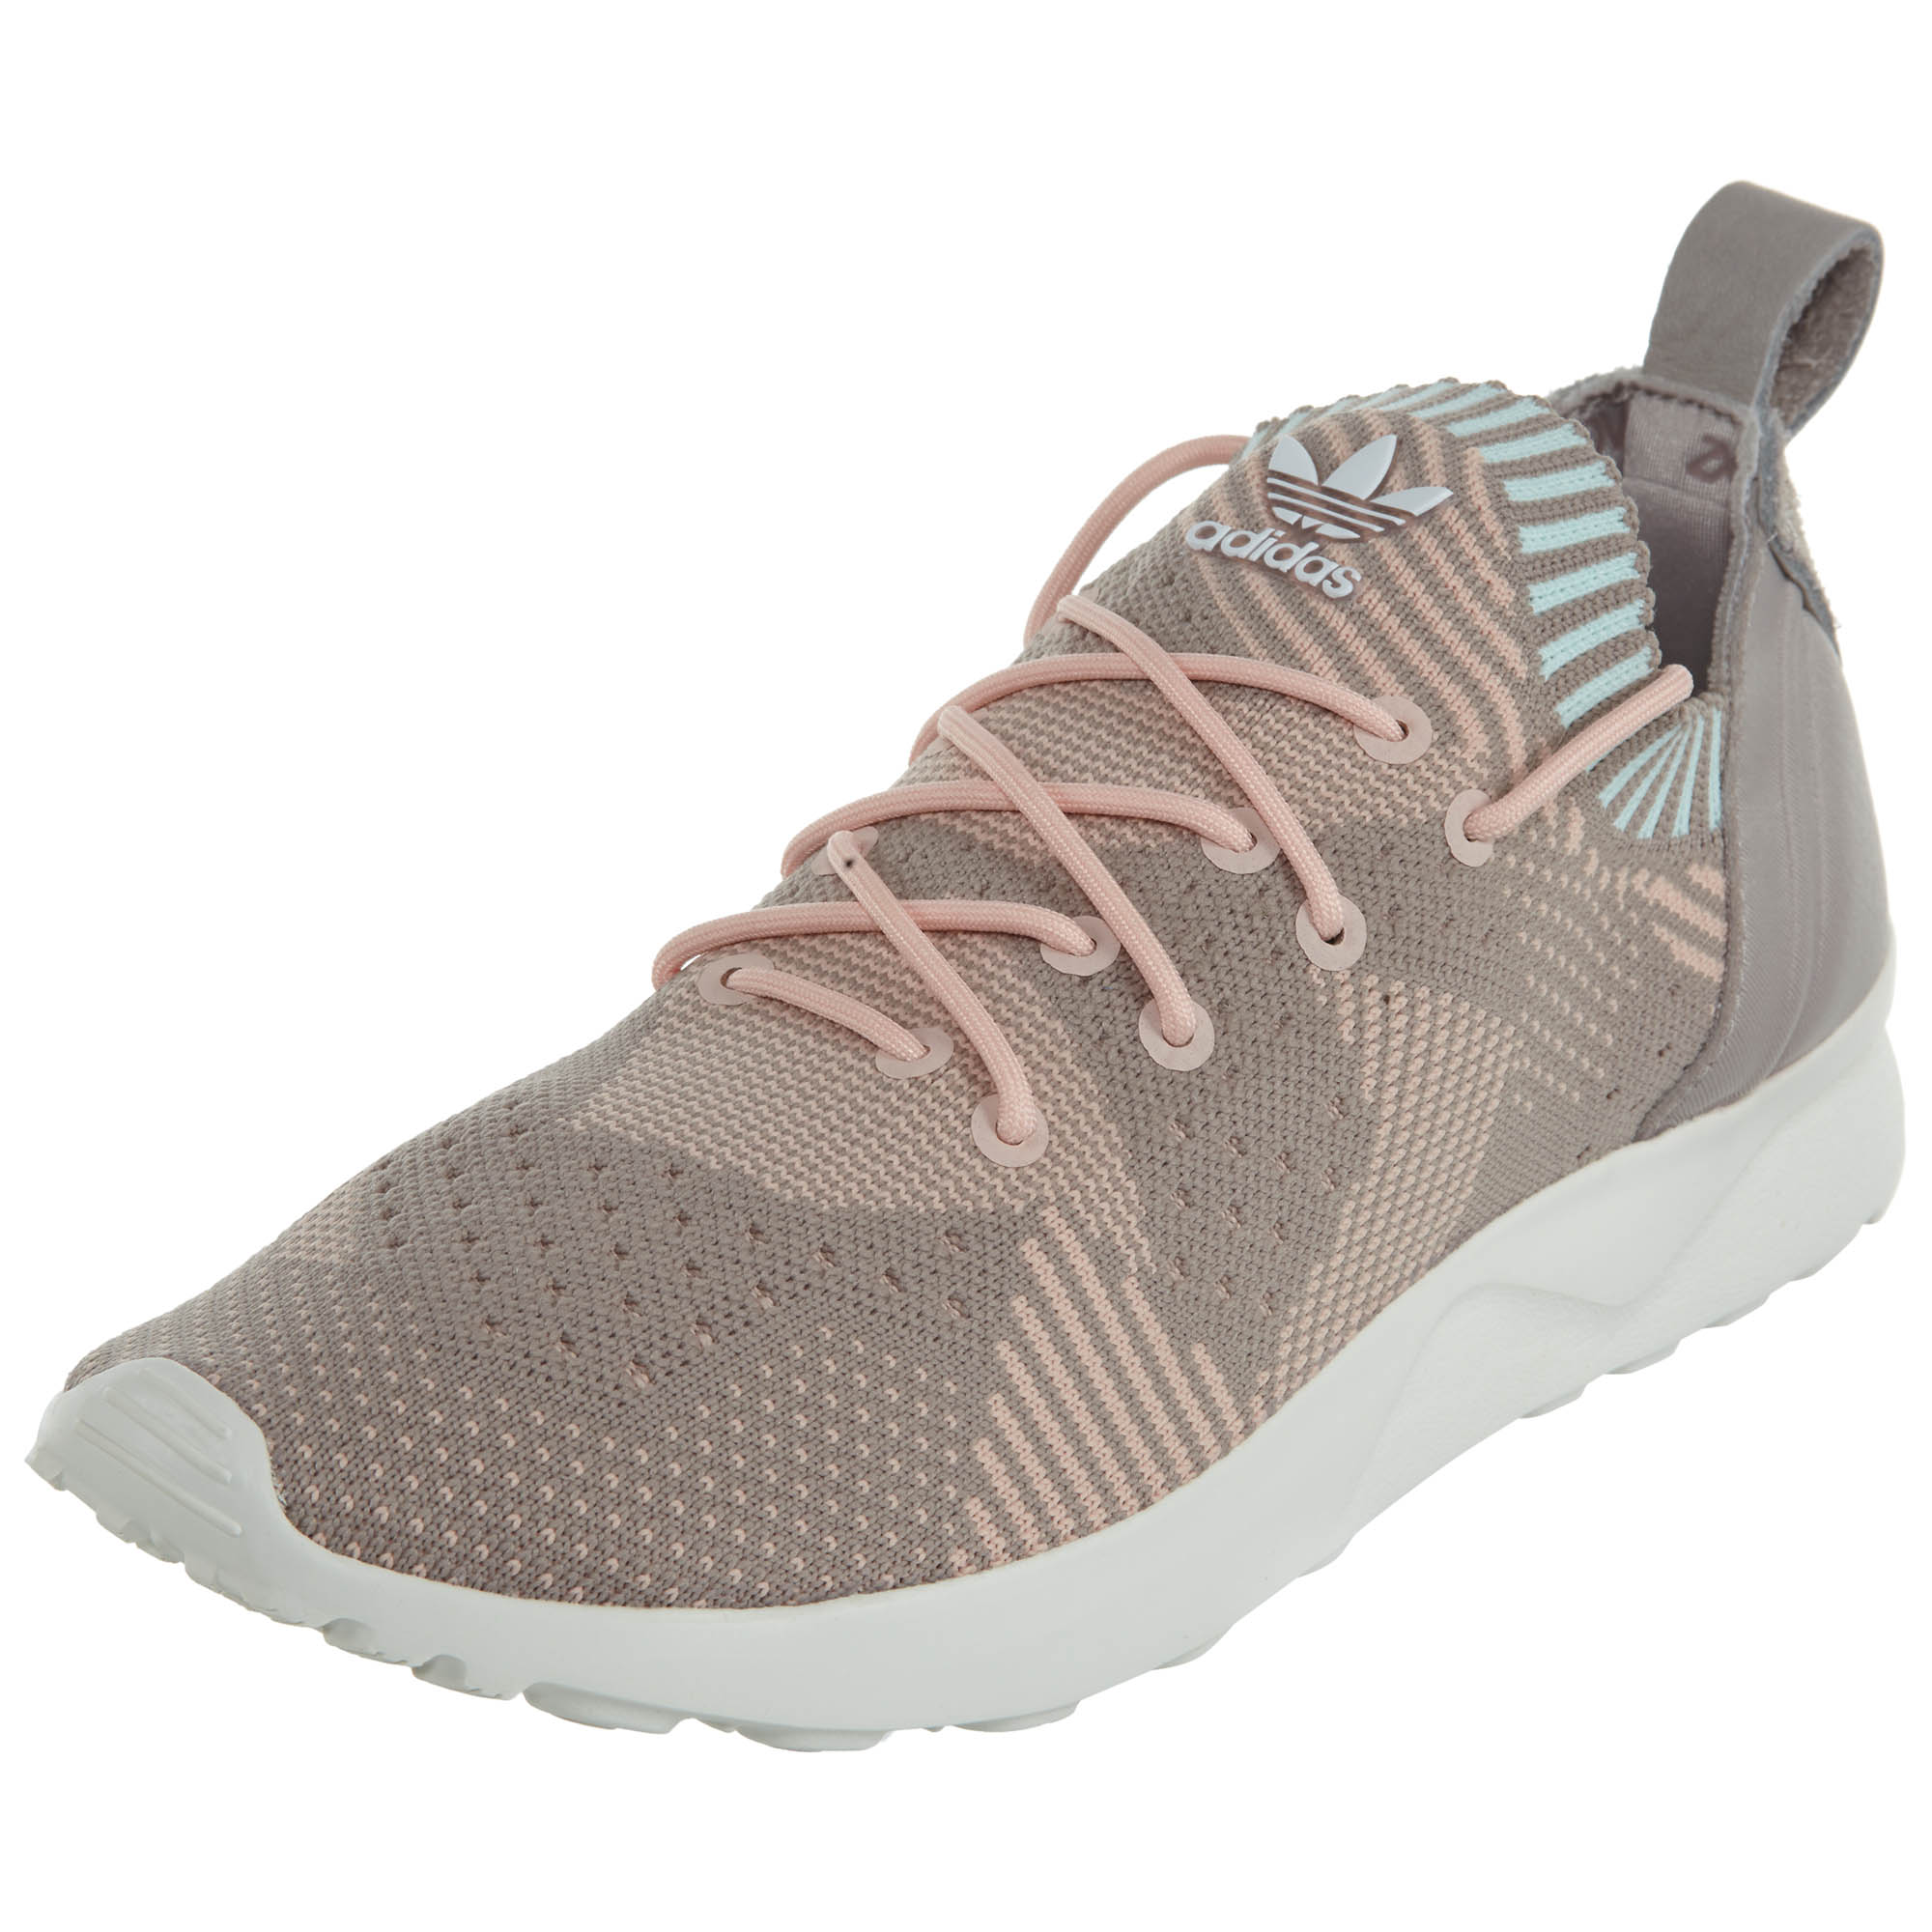 a4d709deaddb5 addias Originals Womens Zx Flux Adv Virtue Pk Shoes BB4266